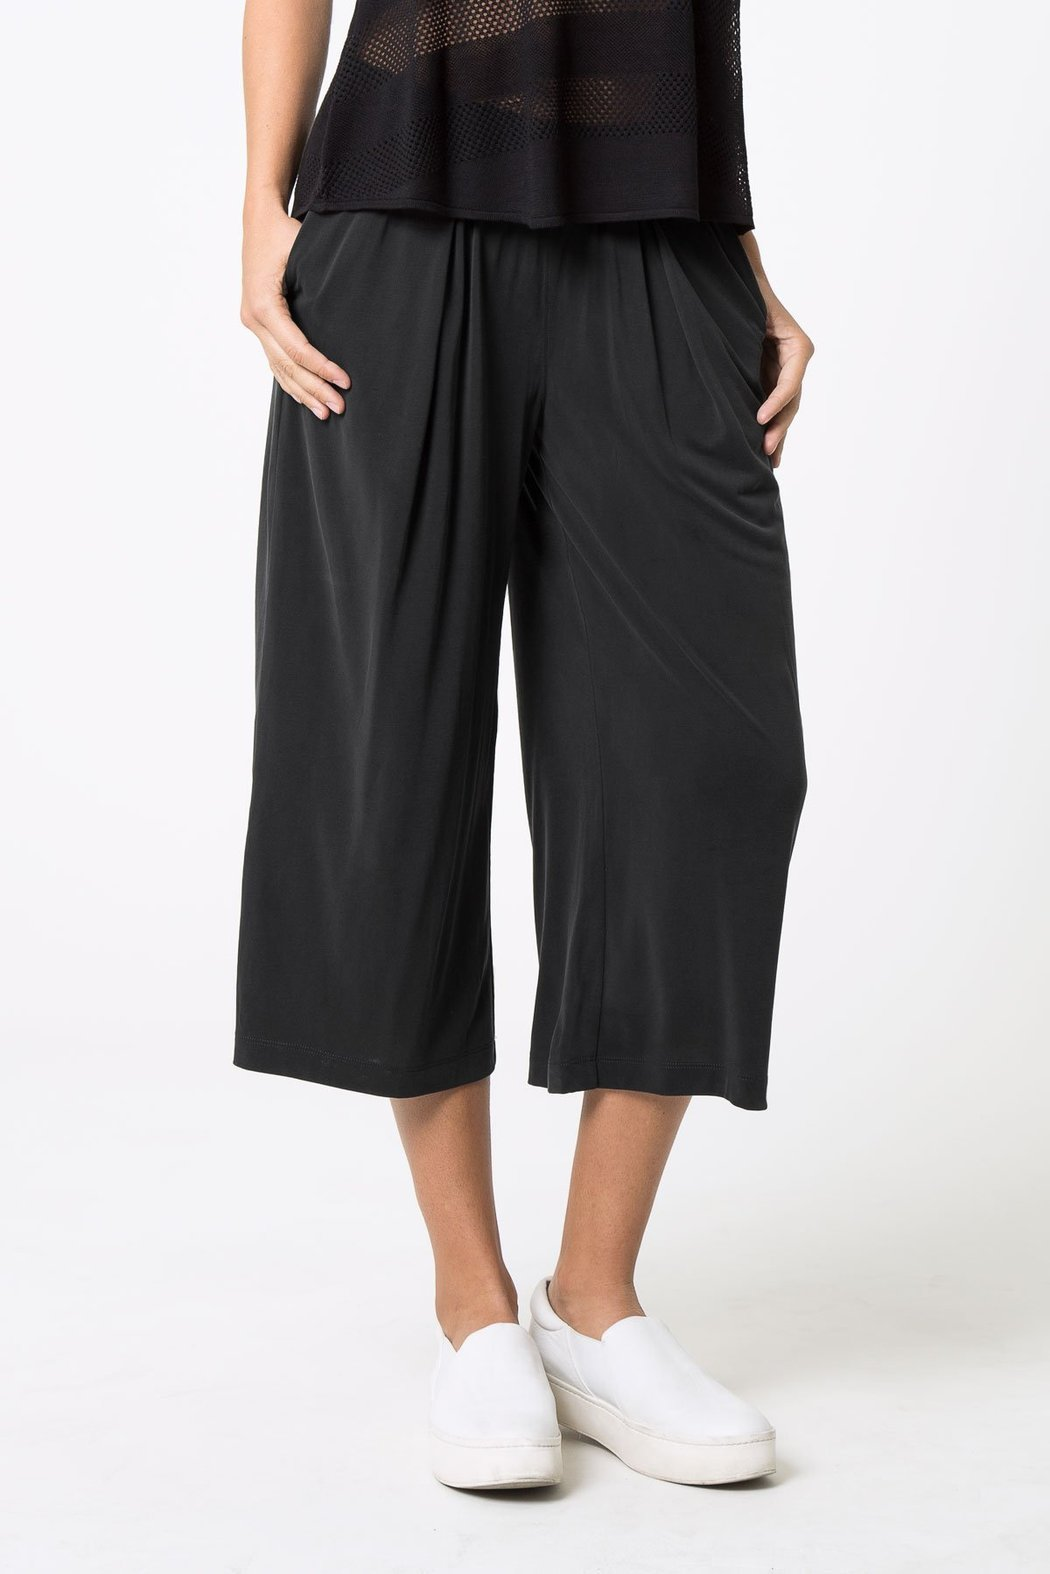 Fringe Luxe Culottes